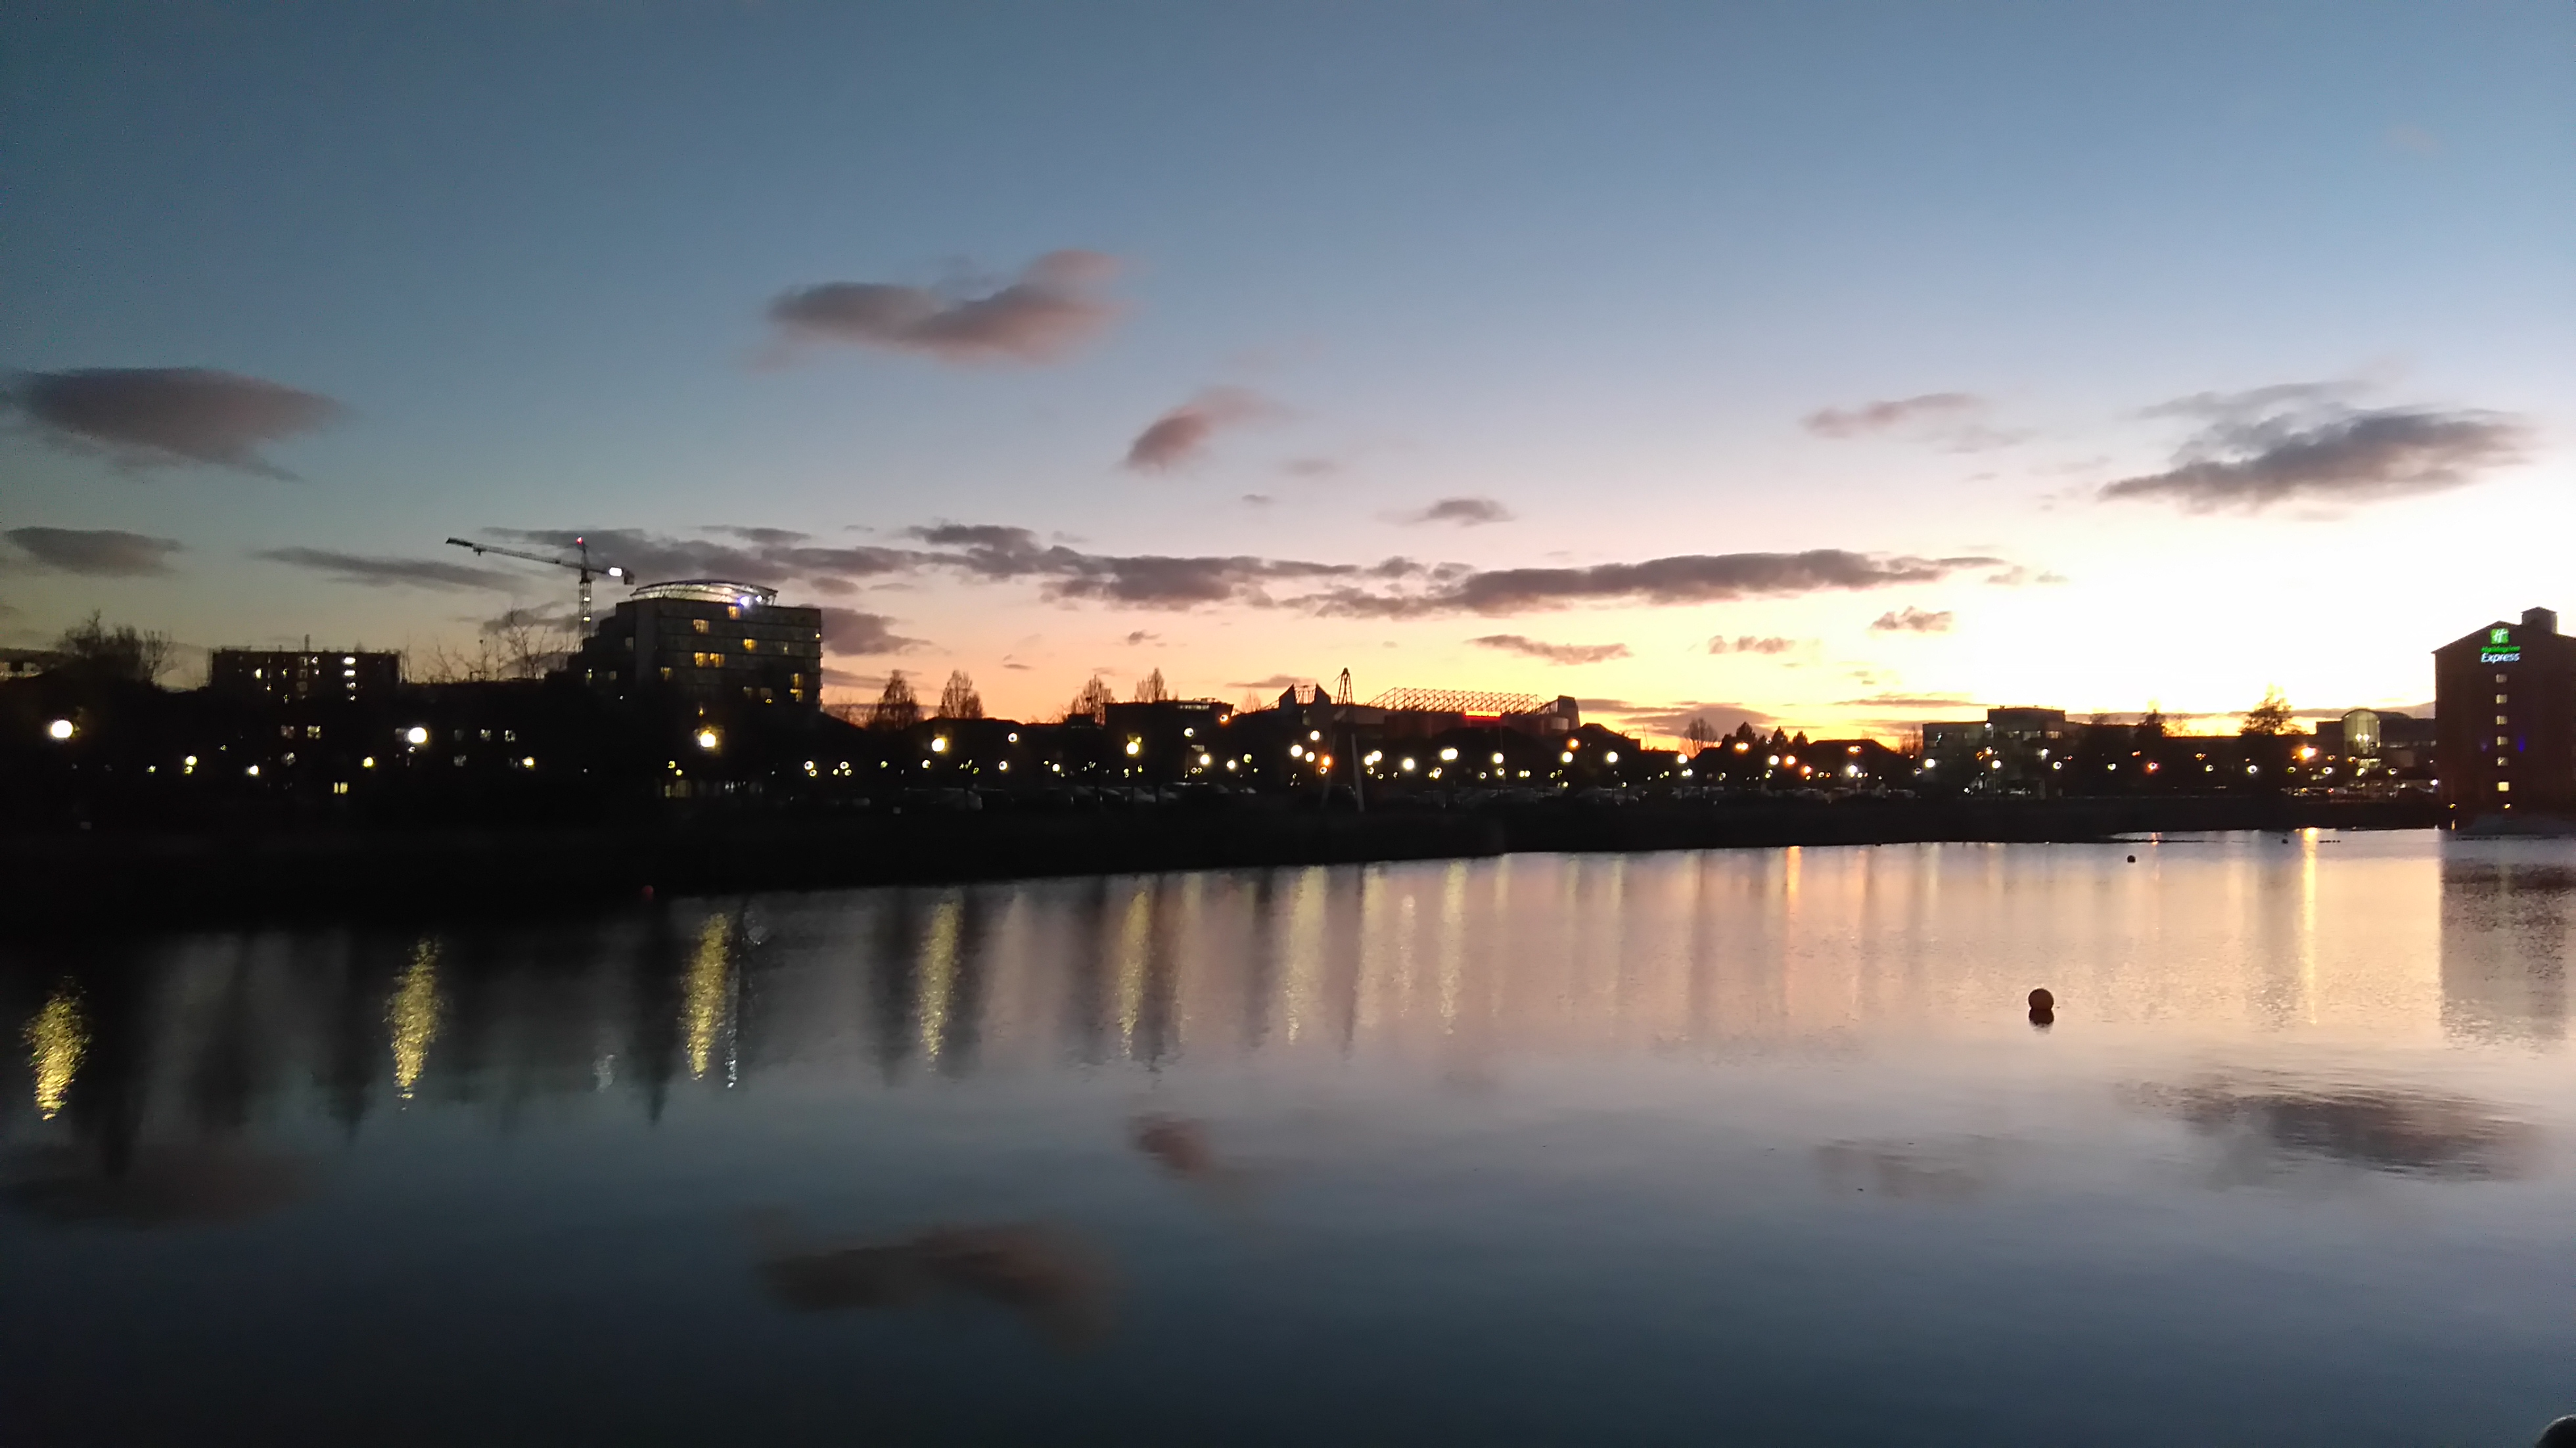 Ontario Basin, Salford Quays, during Sunset.